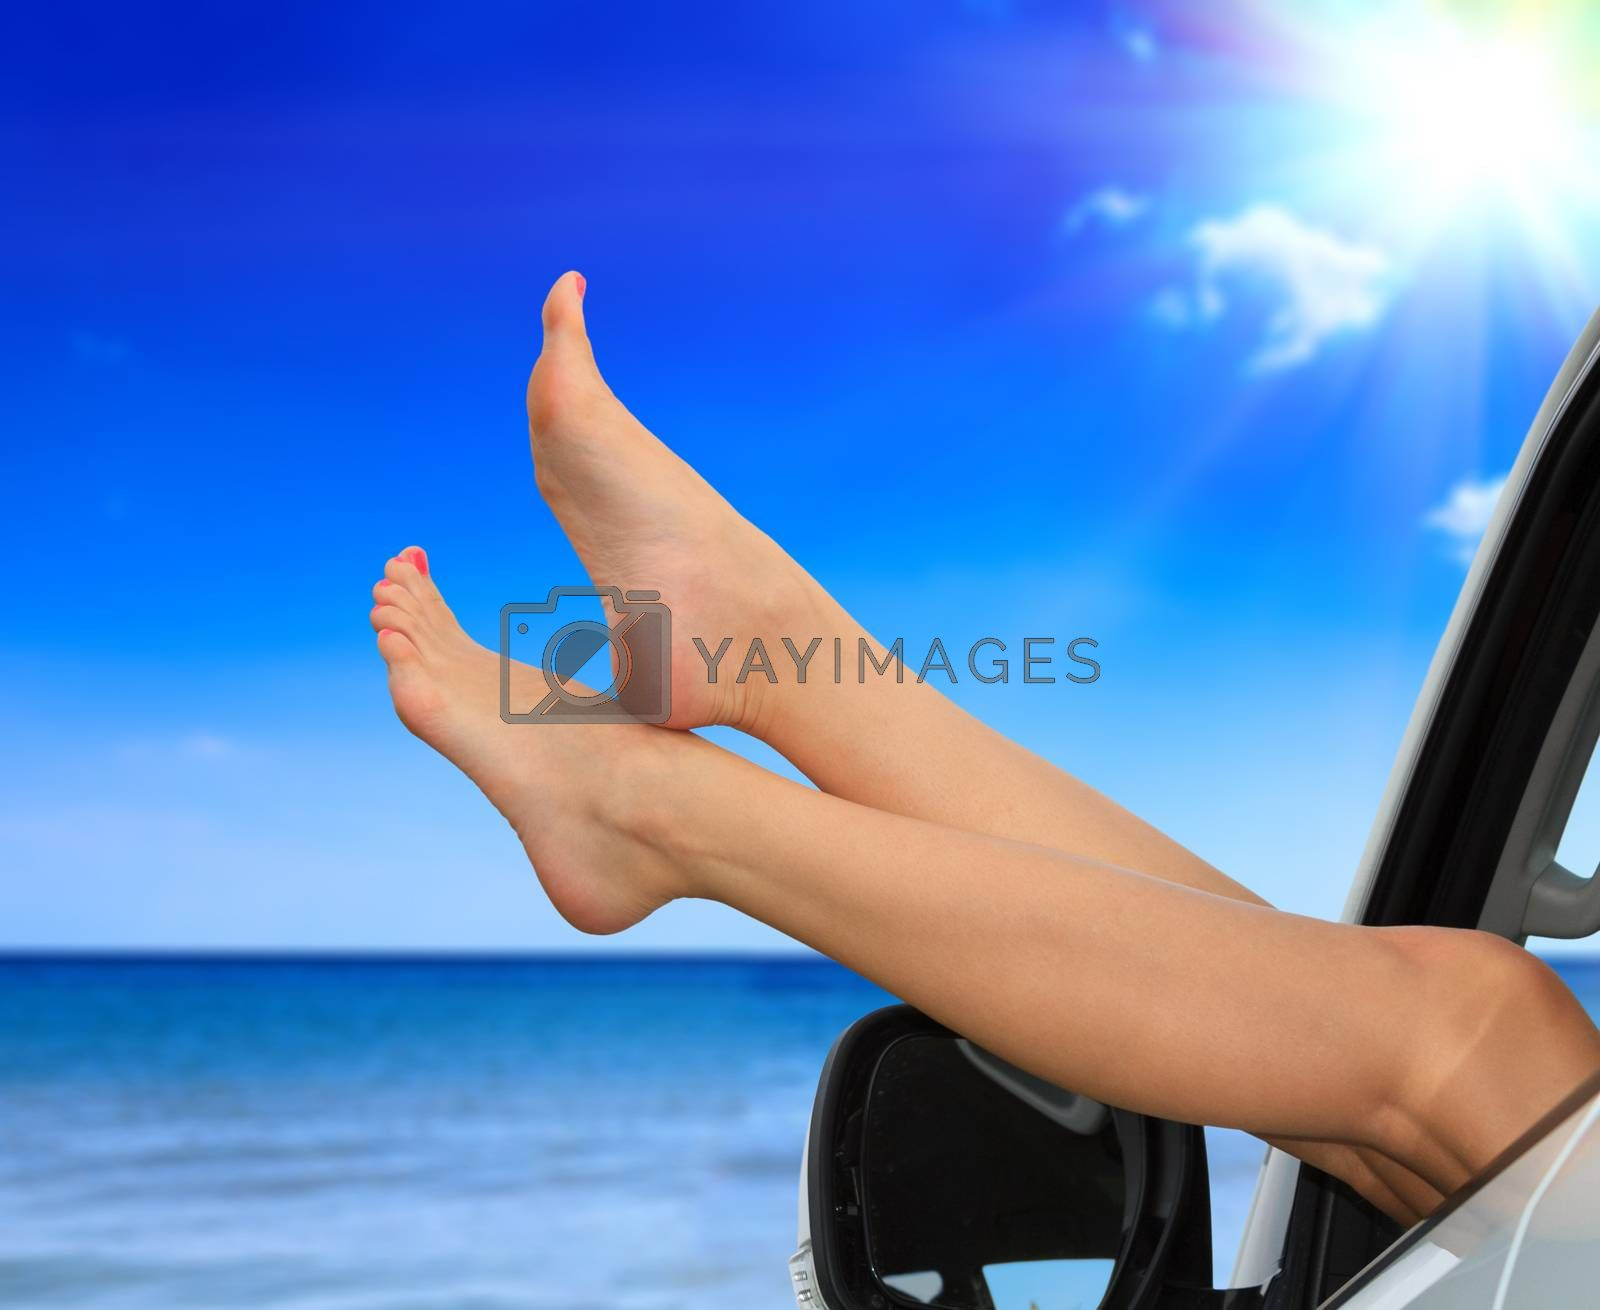 Beaitiful female legs against the sea and summer blue sky. Vacation, travel summer holidays concept. Woman shows her slim legs from the car window